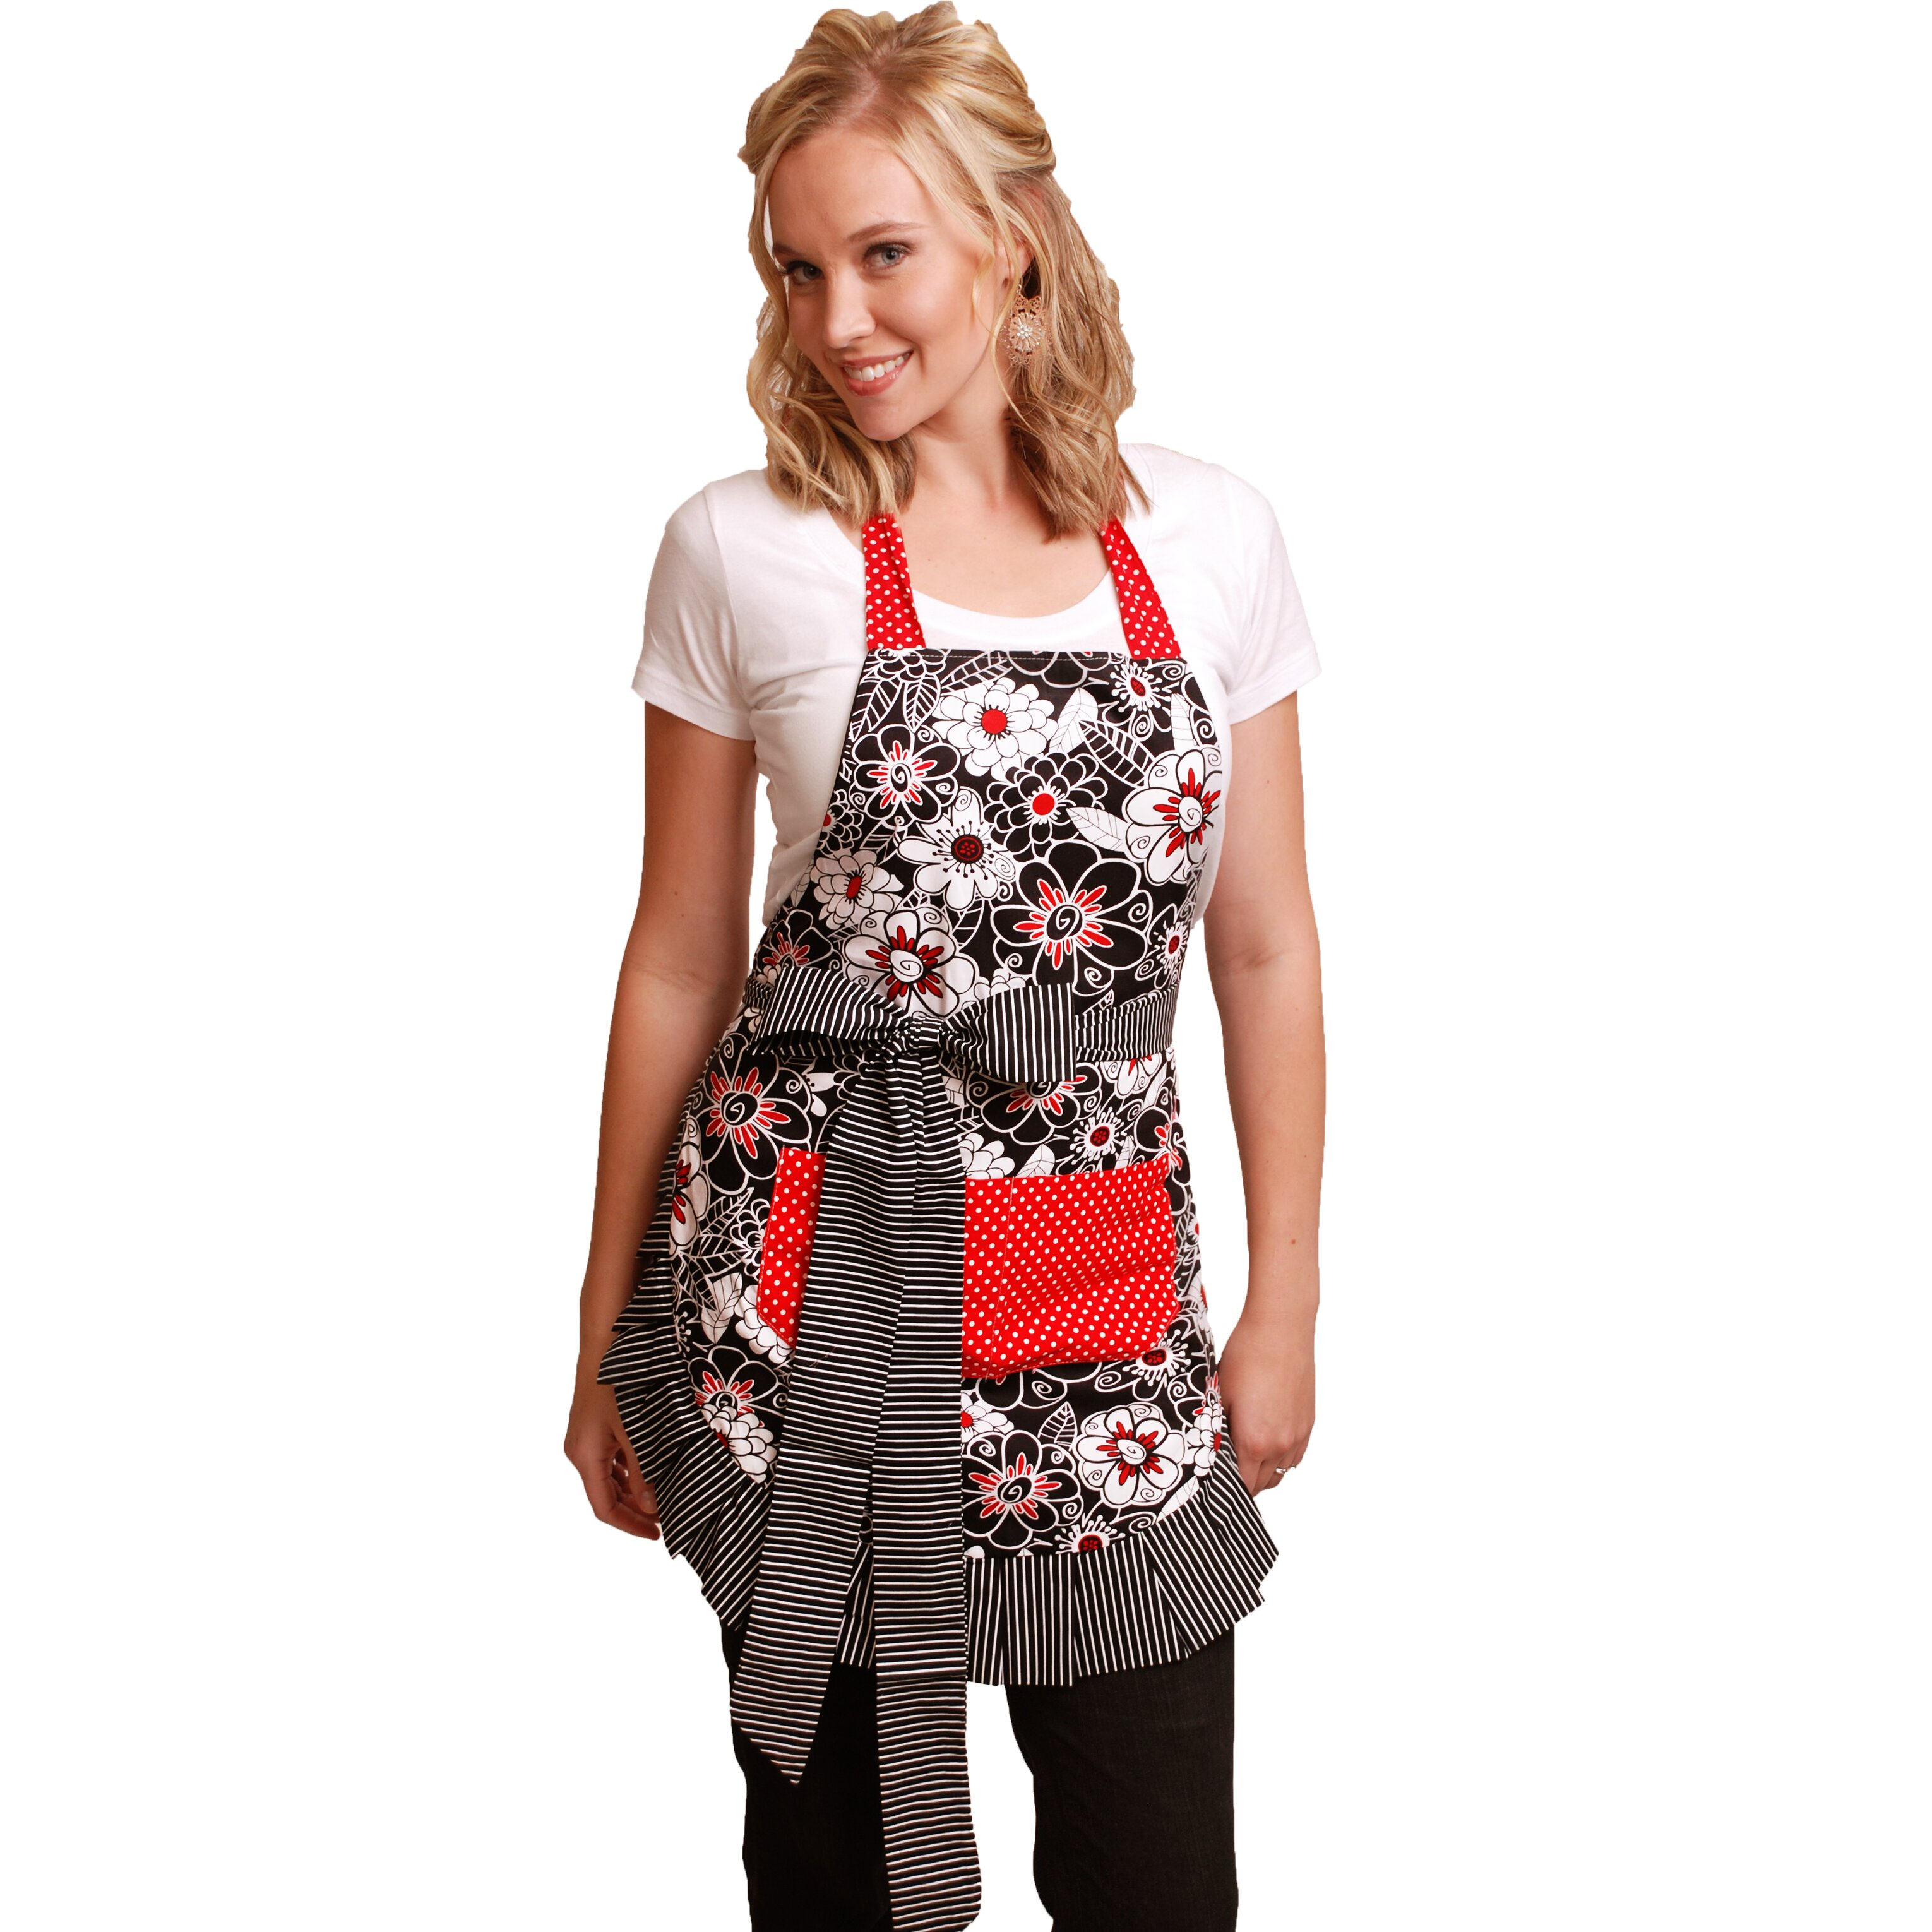 This is an awesome apron tutorial